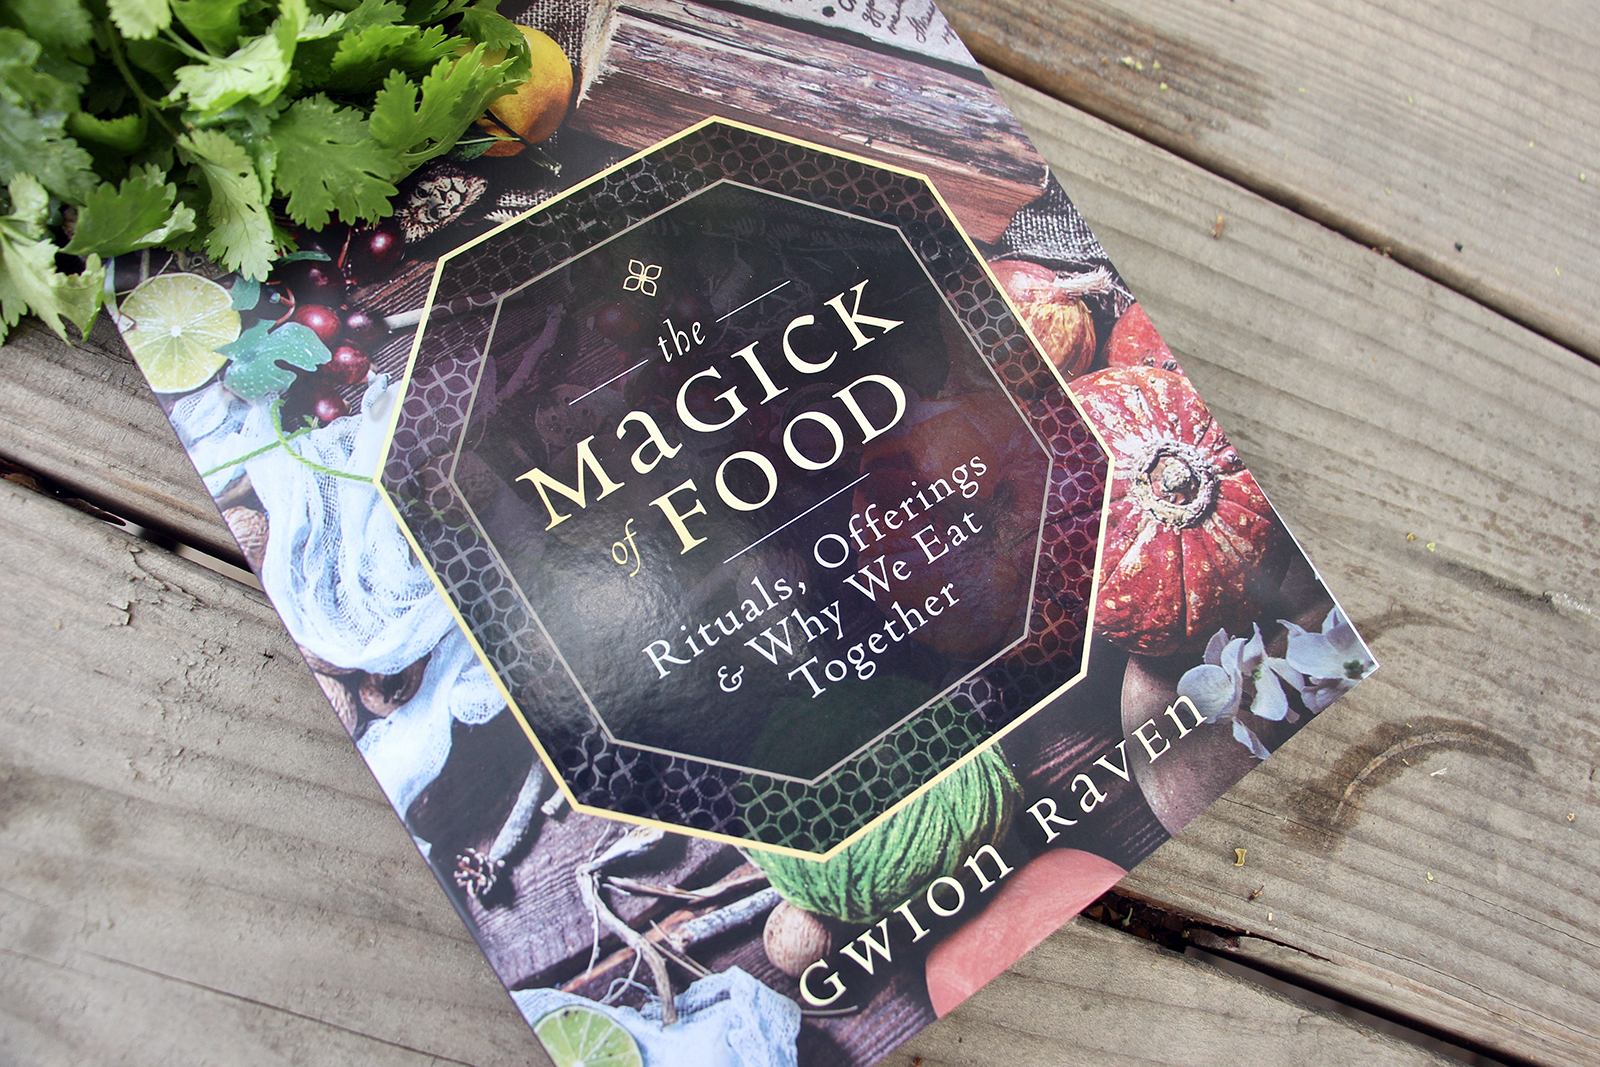 """""""The Magick of Food""""by Gwion Raven. RNS photo by Emily McFarlan Miller"""